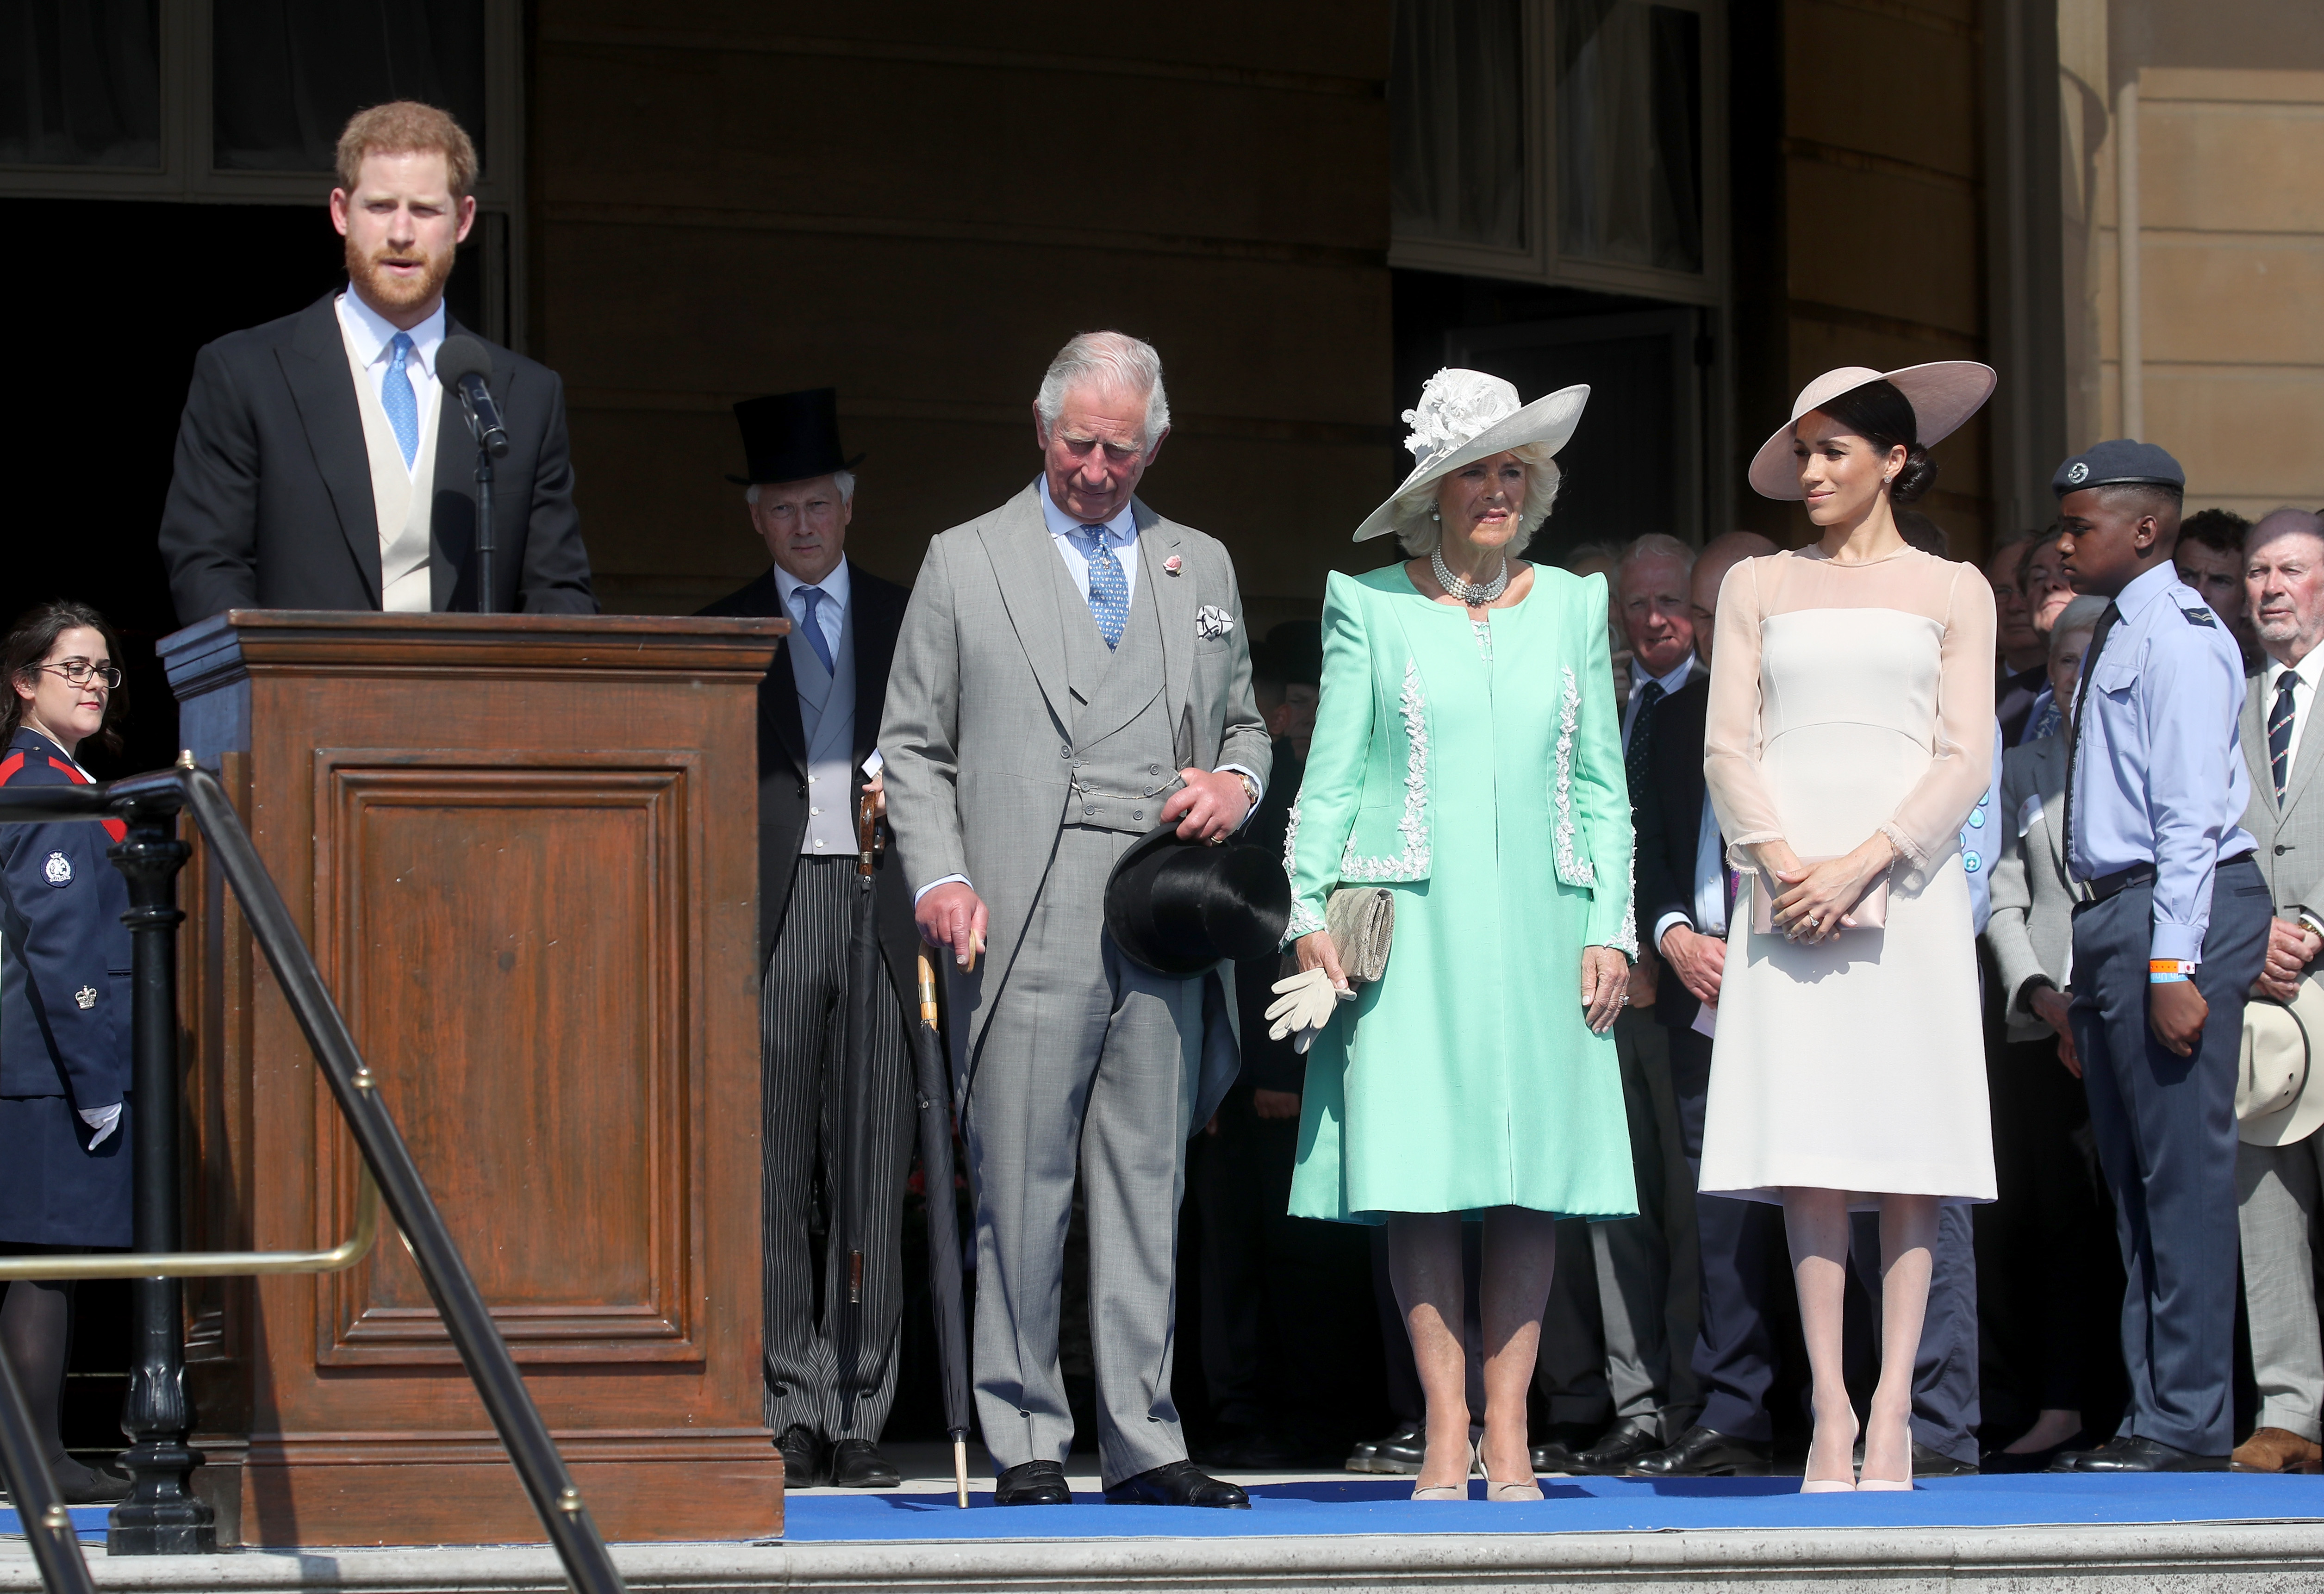 Prince Harry, Duke of Sussex gives a speech next to Prince Charles, Prince of Wales, Camilla, Duchess of Cornwall and Meghan, Duchess of Sussex as they attend The Prince of Wales' 70th Birthday Patronage Celebration held at Buckingham Palace on May 22, 2018 in London, England.